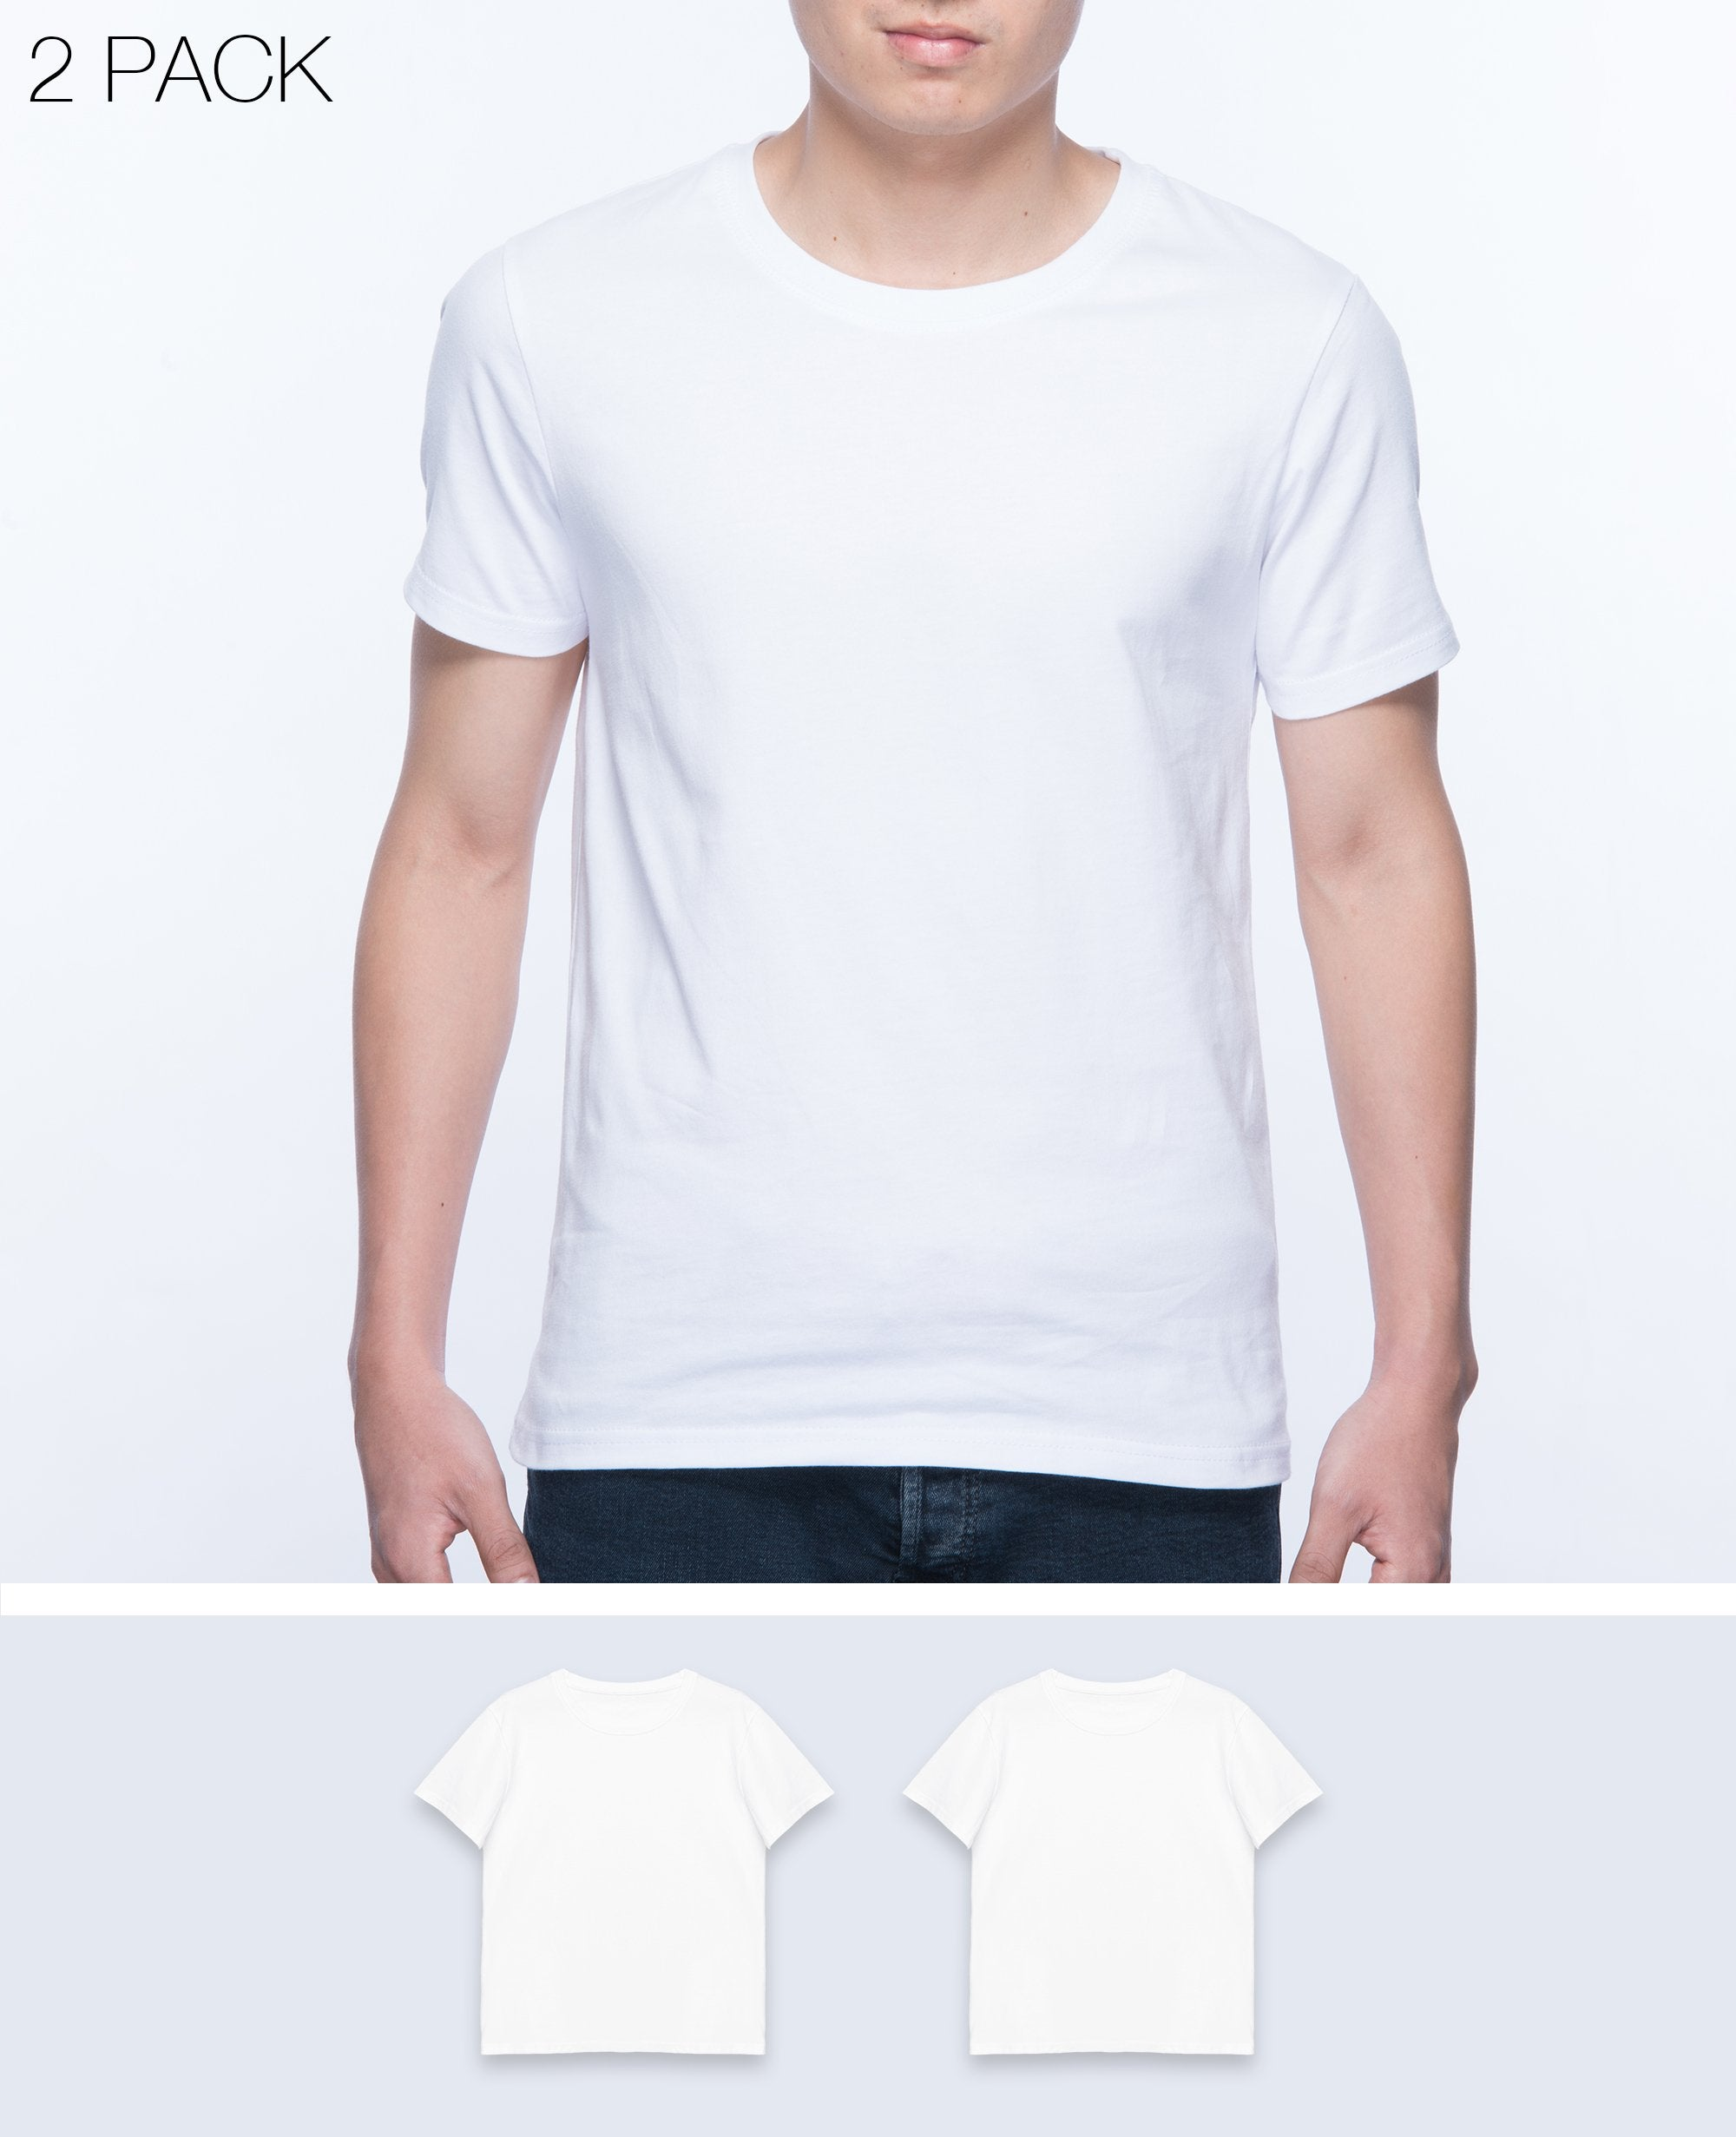 Basic T-shirt Men in White 2 pack - T-Shirts - BRANMA - BRANMA